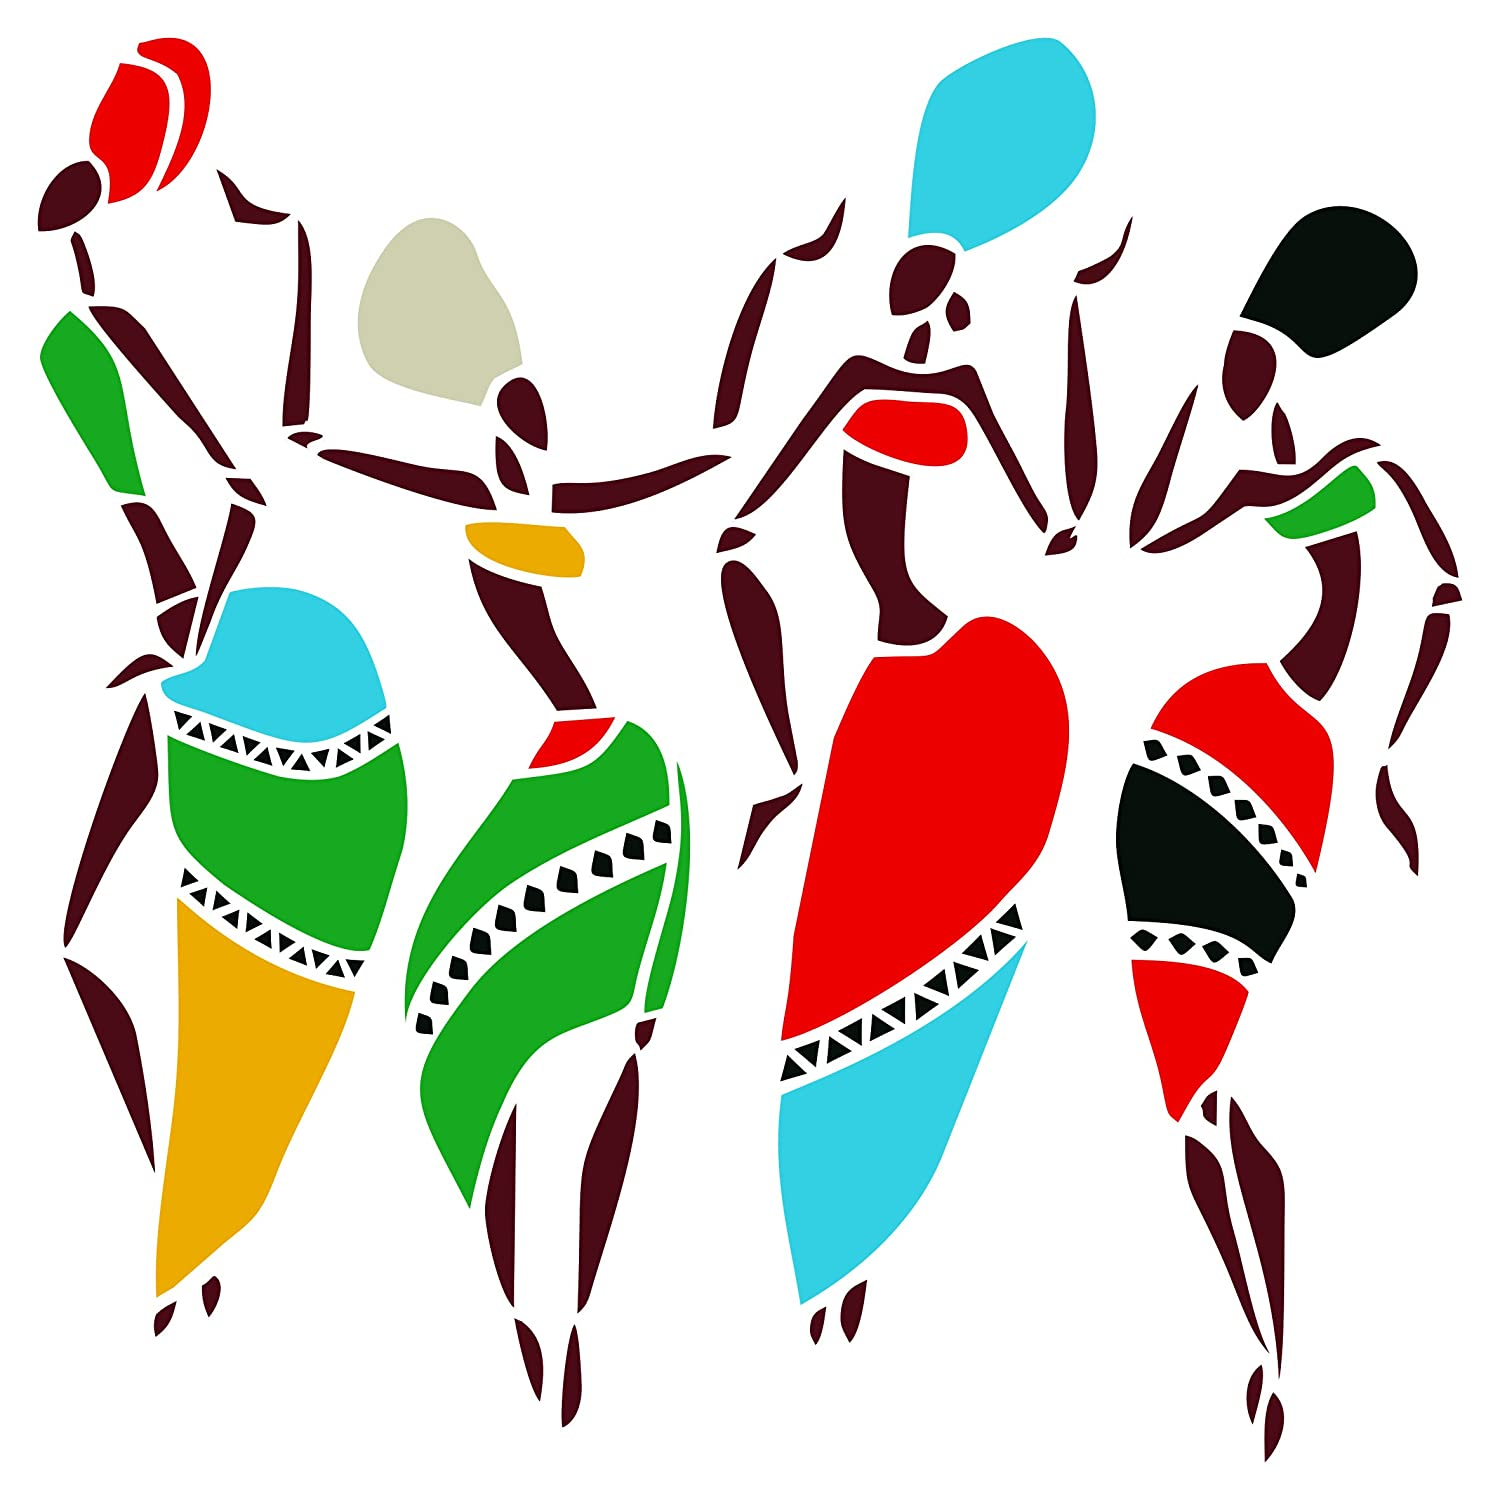 African Dancers Stencil - 25.5 cm x 25.5 cm(L) - Reusable Women Lady Dancers Ethnic Tribal Wall Stencils for Painting - Use on Poster Scrapbook Journal Walls Floors Fabric Furniture Glass Wood etc. Stencil Company